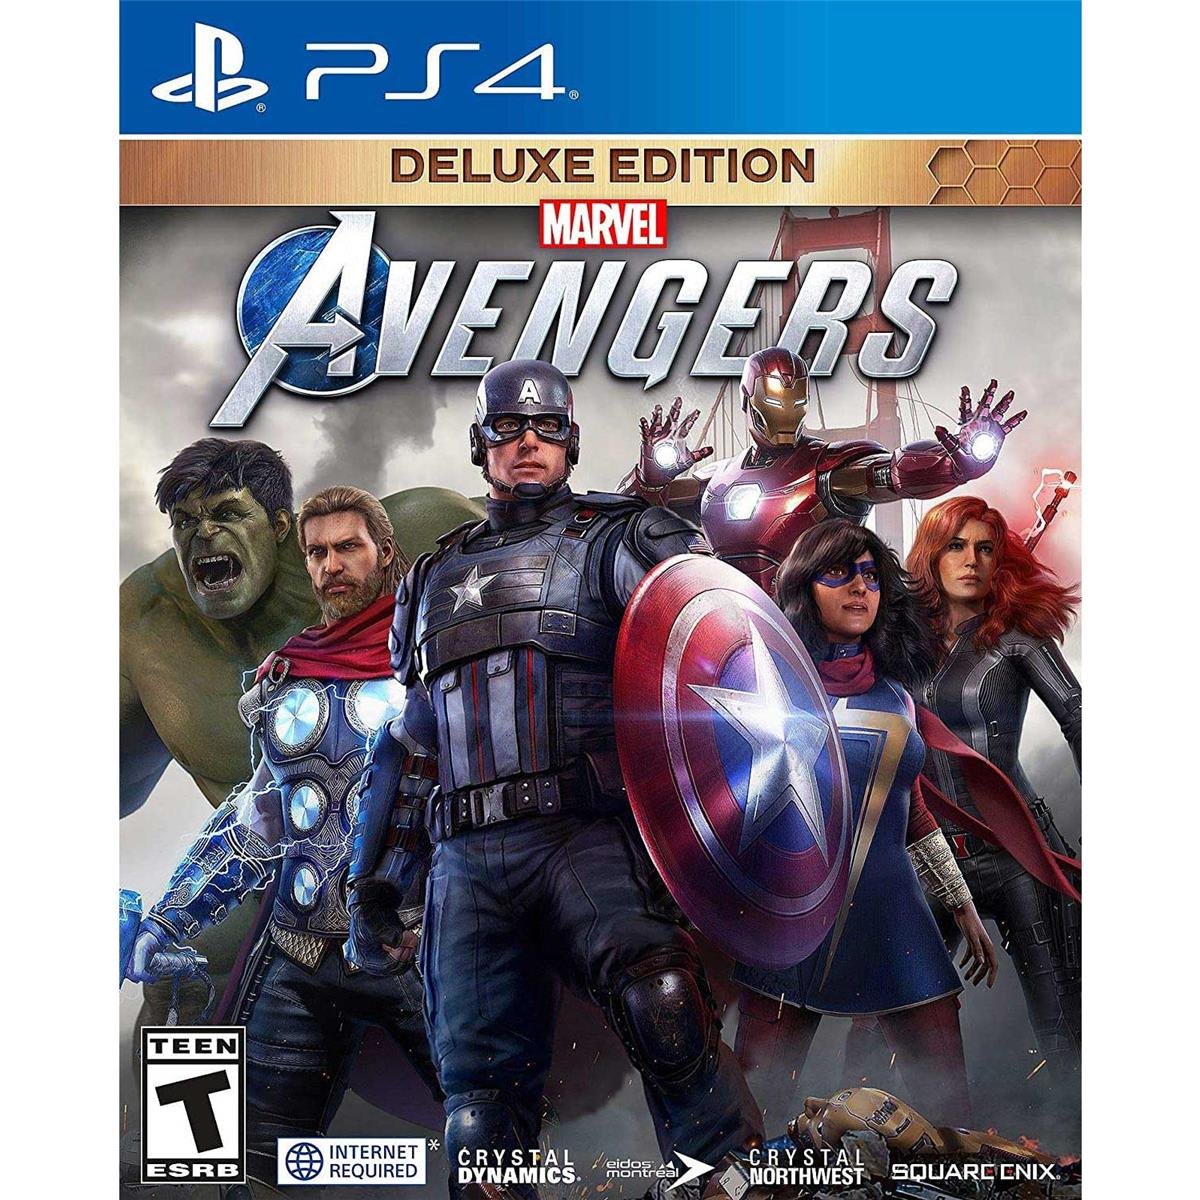 Marvel's Avengers: Deluxe Edition, Square Enix, PlayStation 4